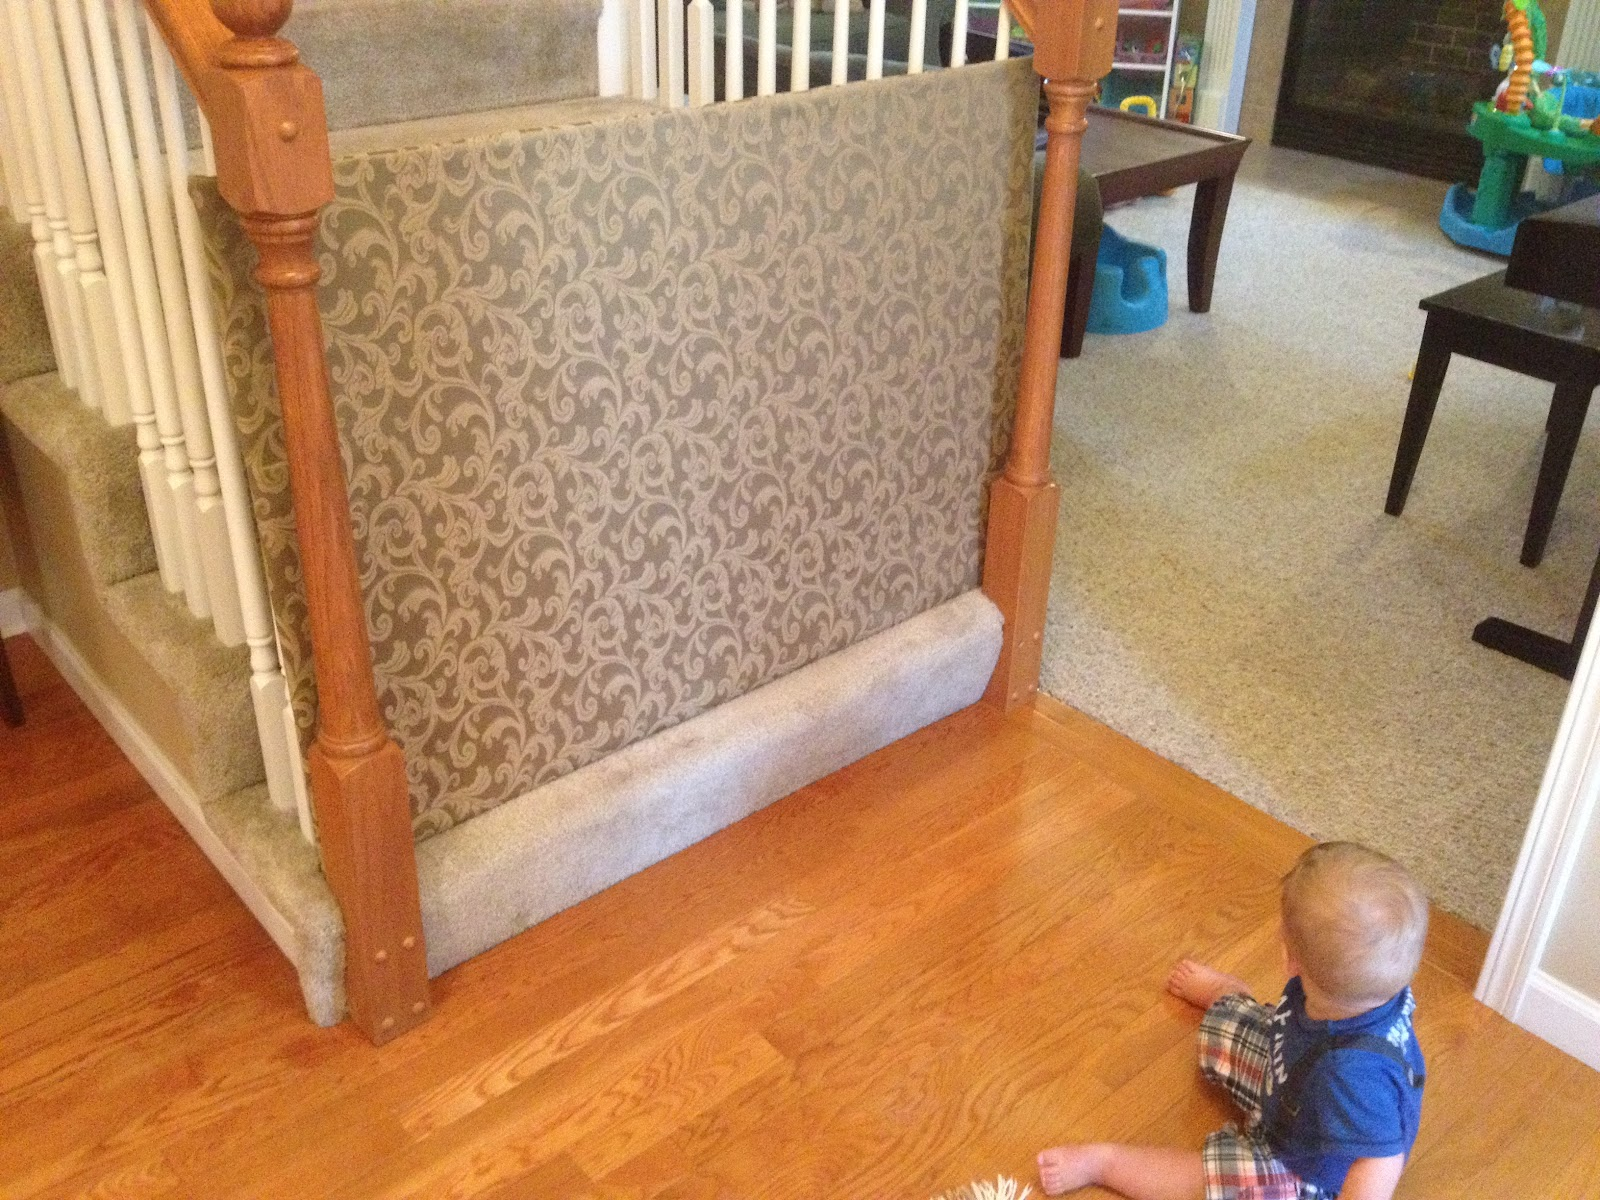 Baby Gates Can Be Expensive Here Are 9 Gorgeous Diy Baby Gates You